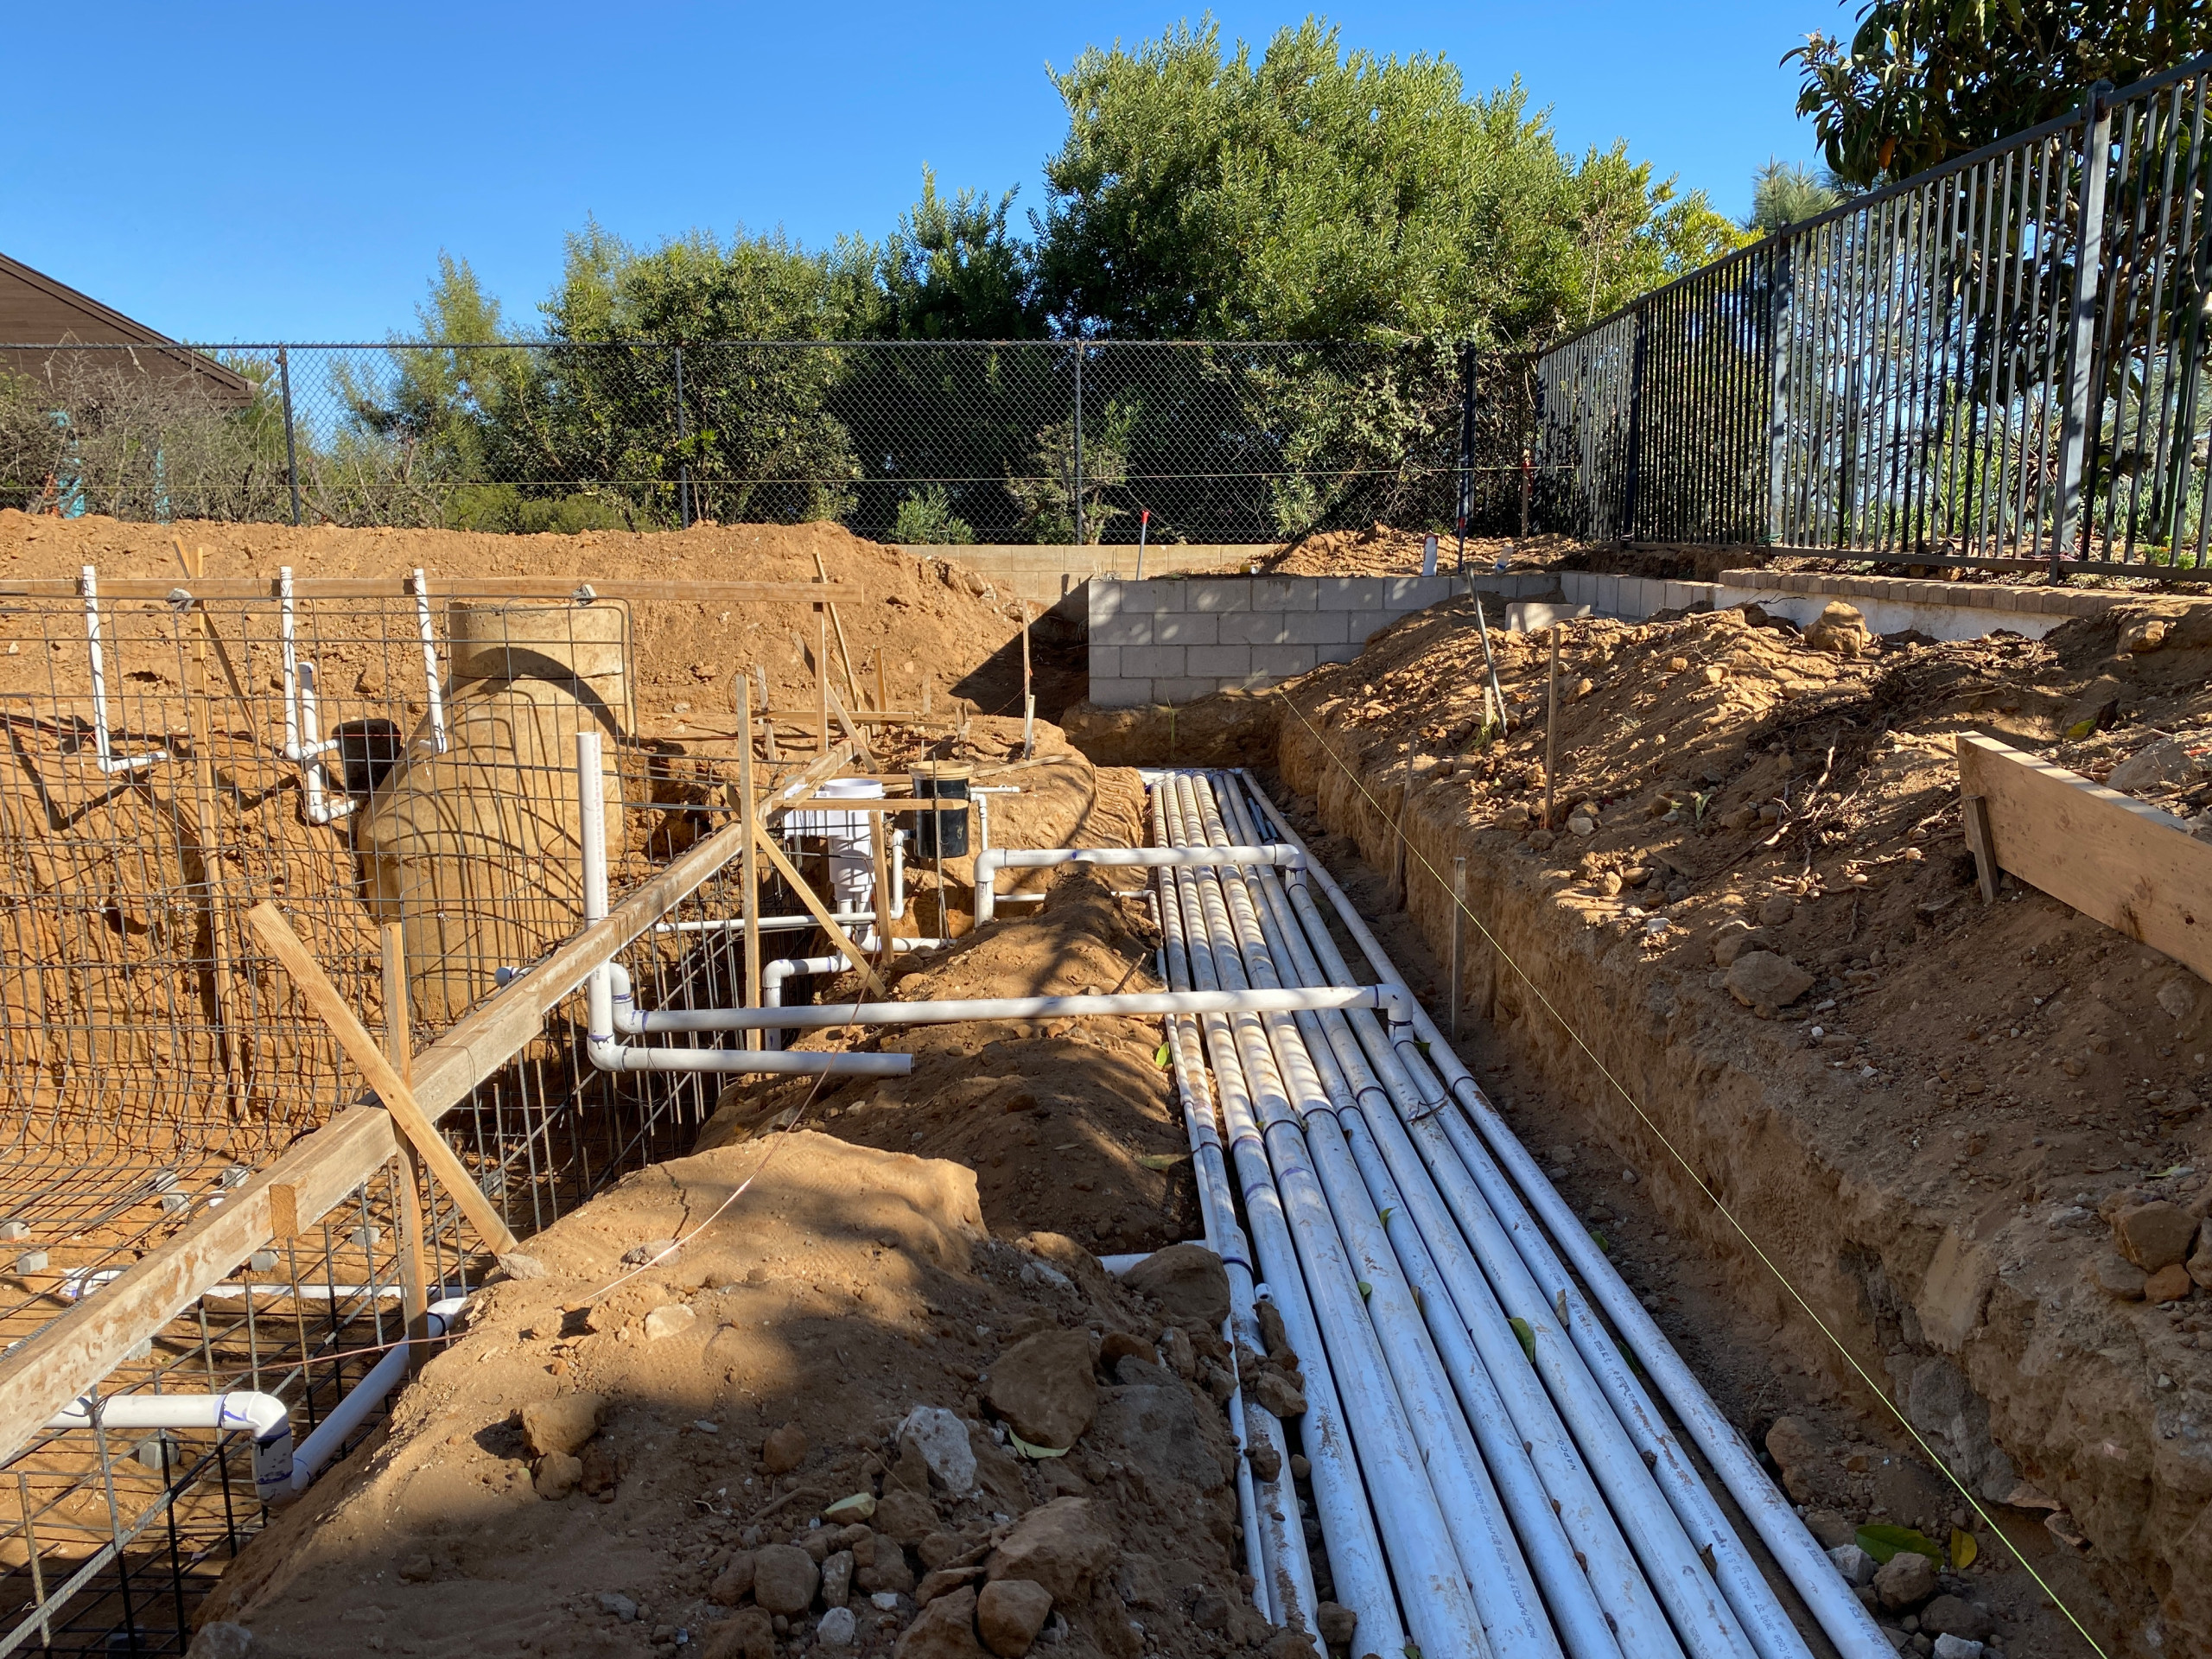 Plumbing Pipes Installed for the Pool